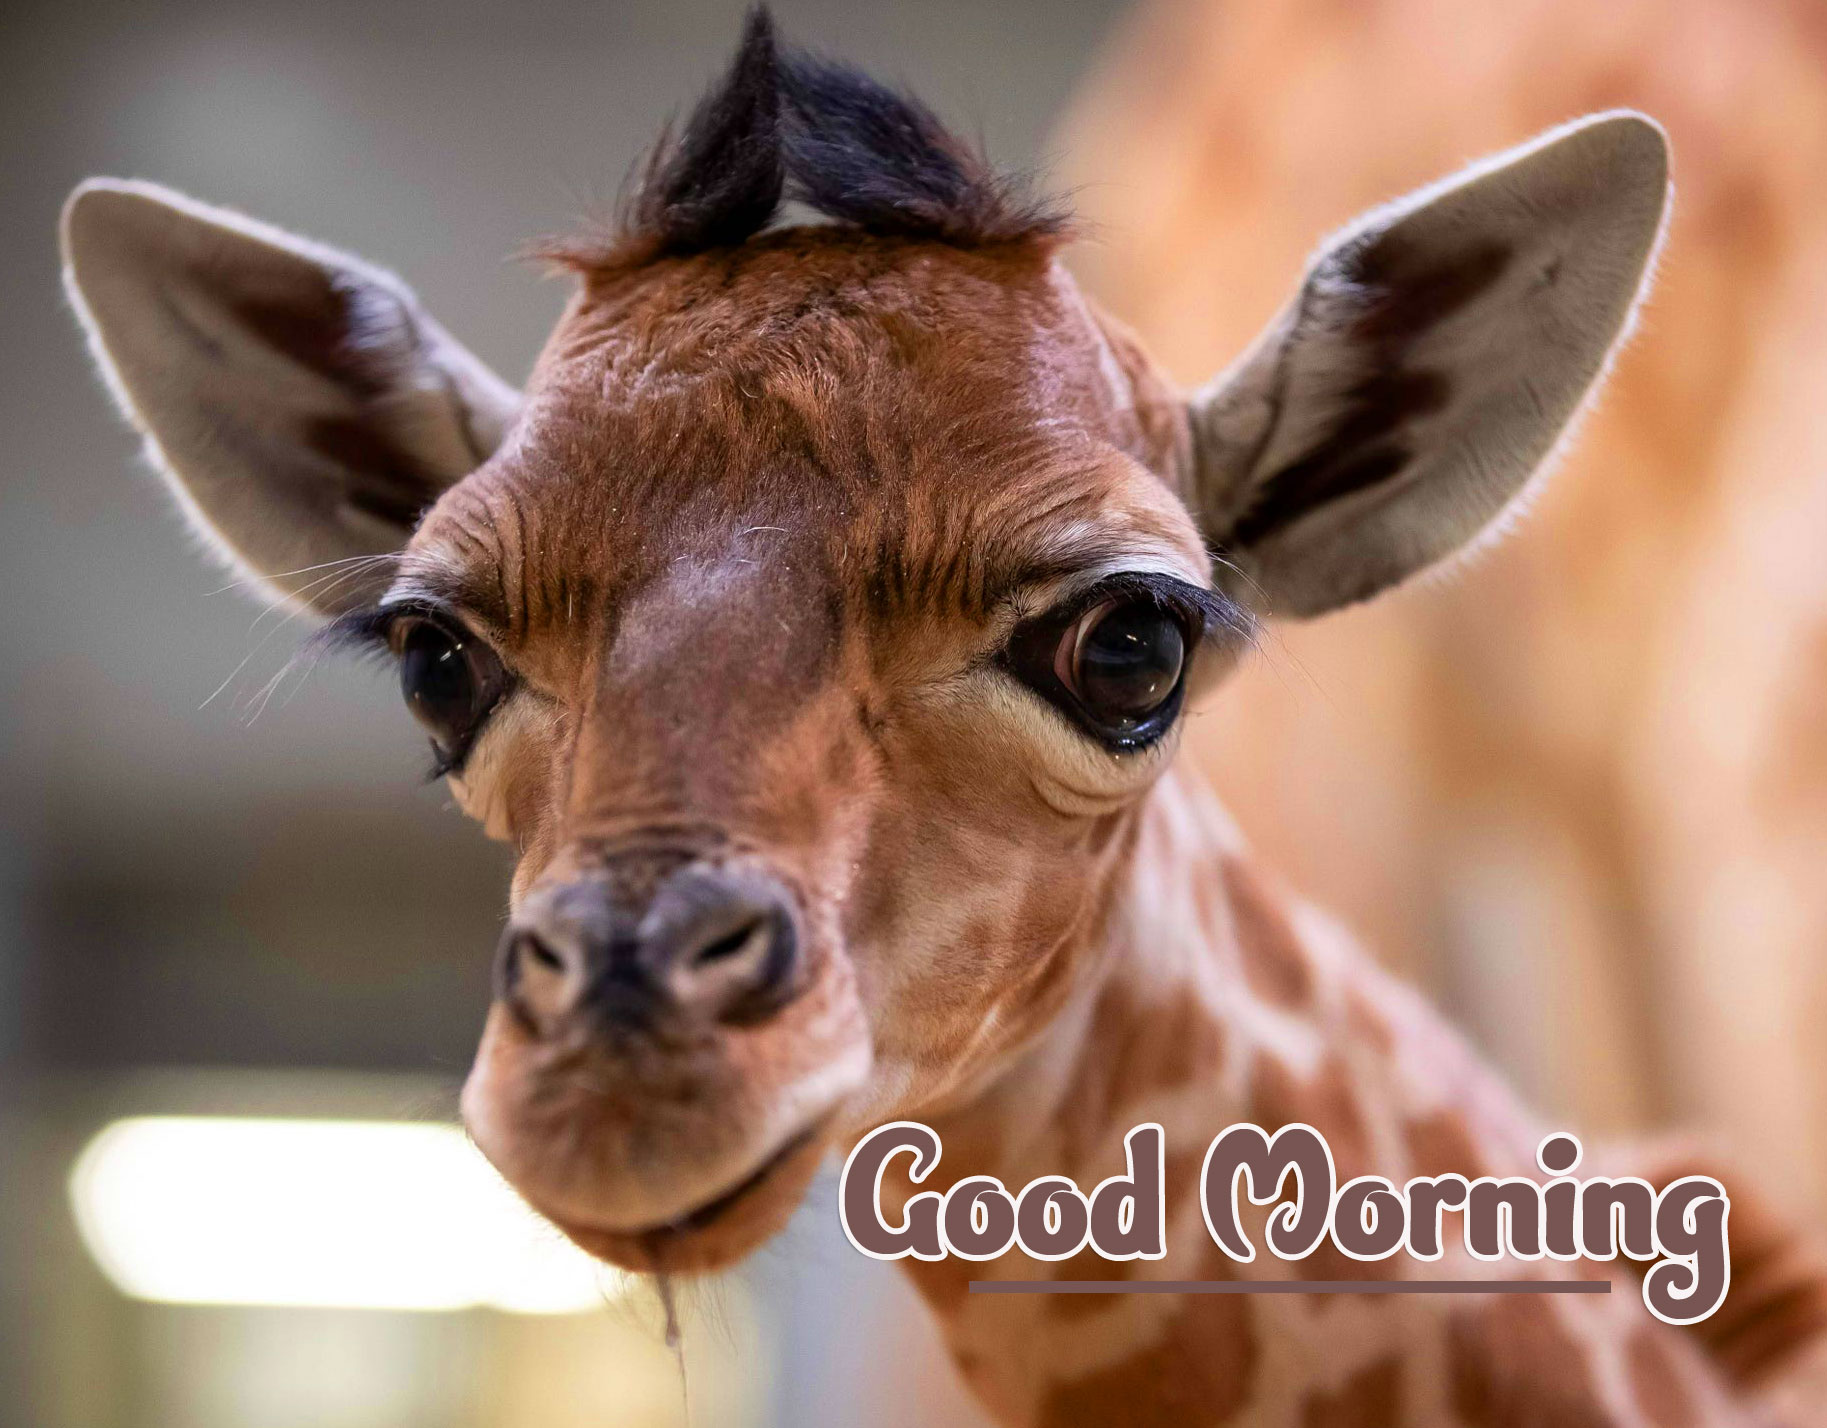 Animal Good morning Wishes Wallpaper pics Download